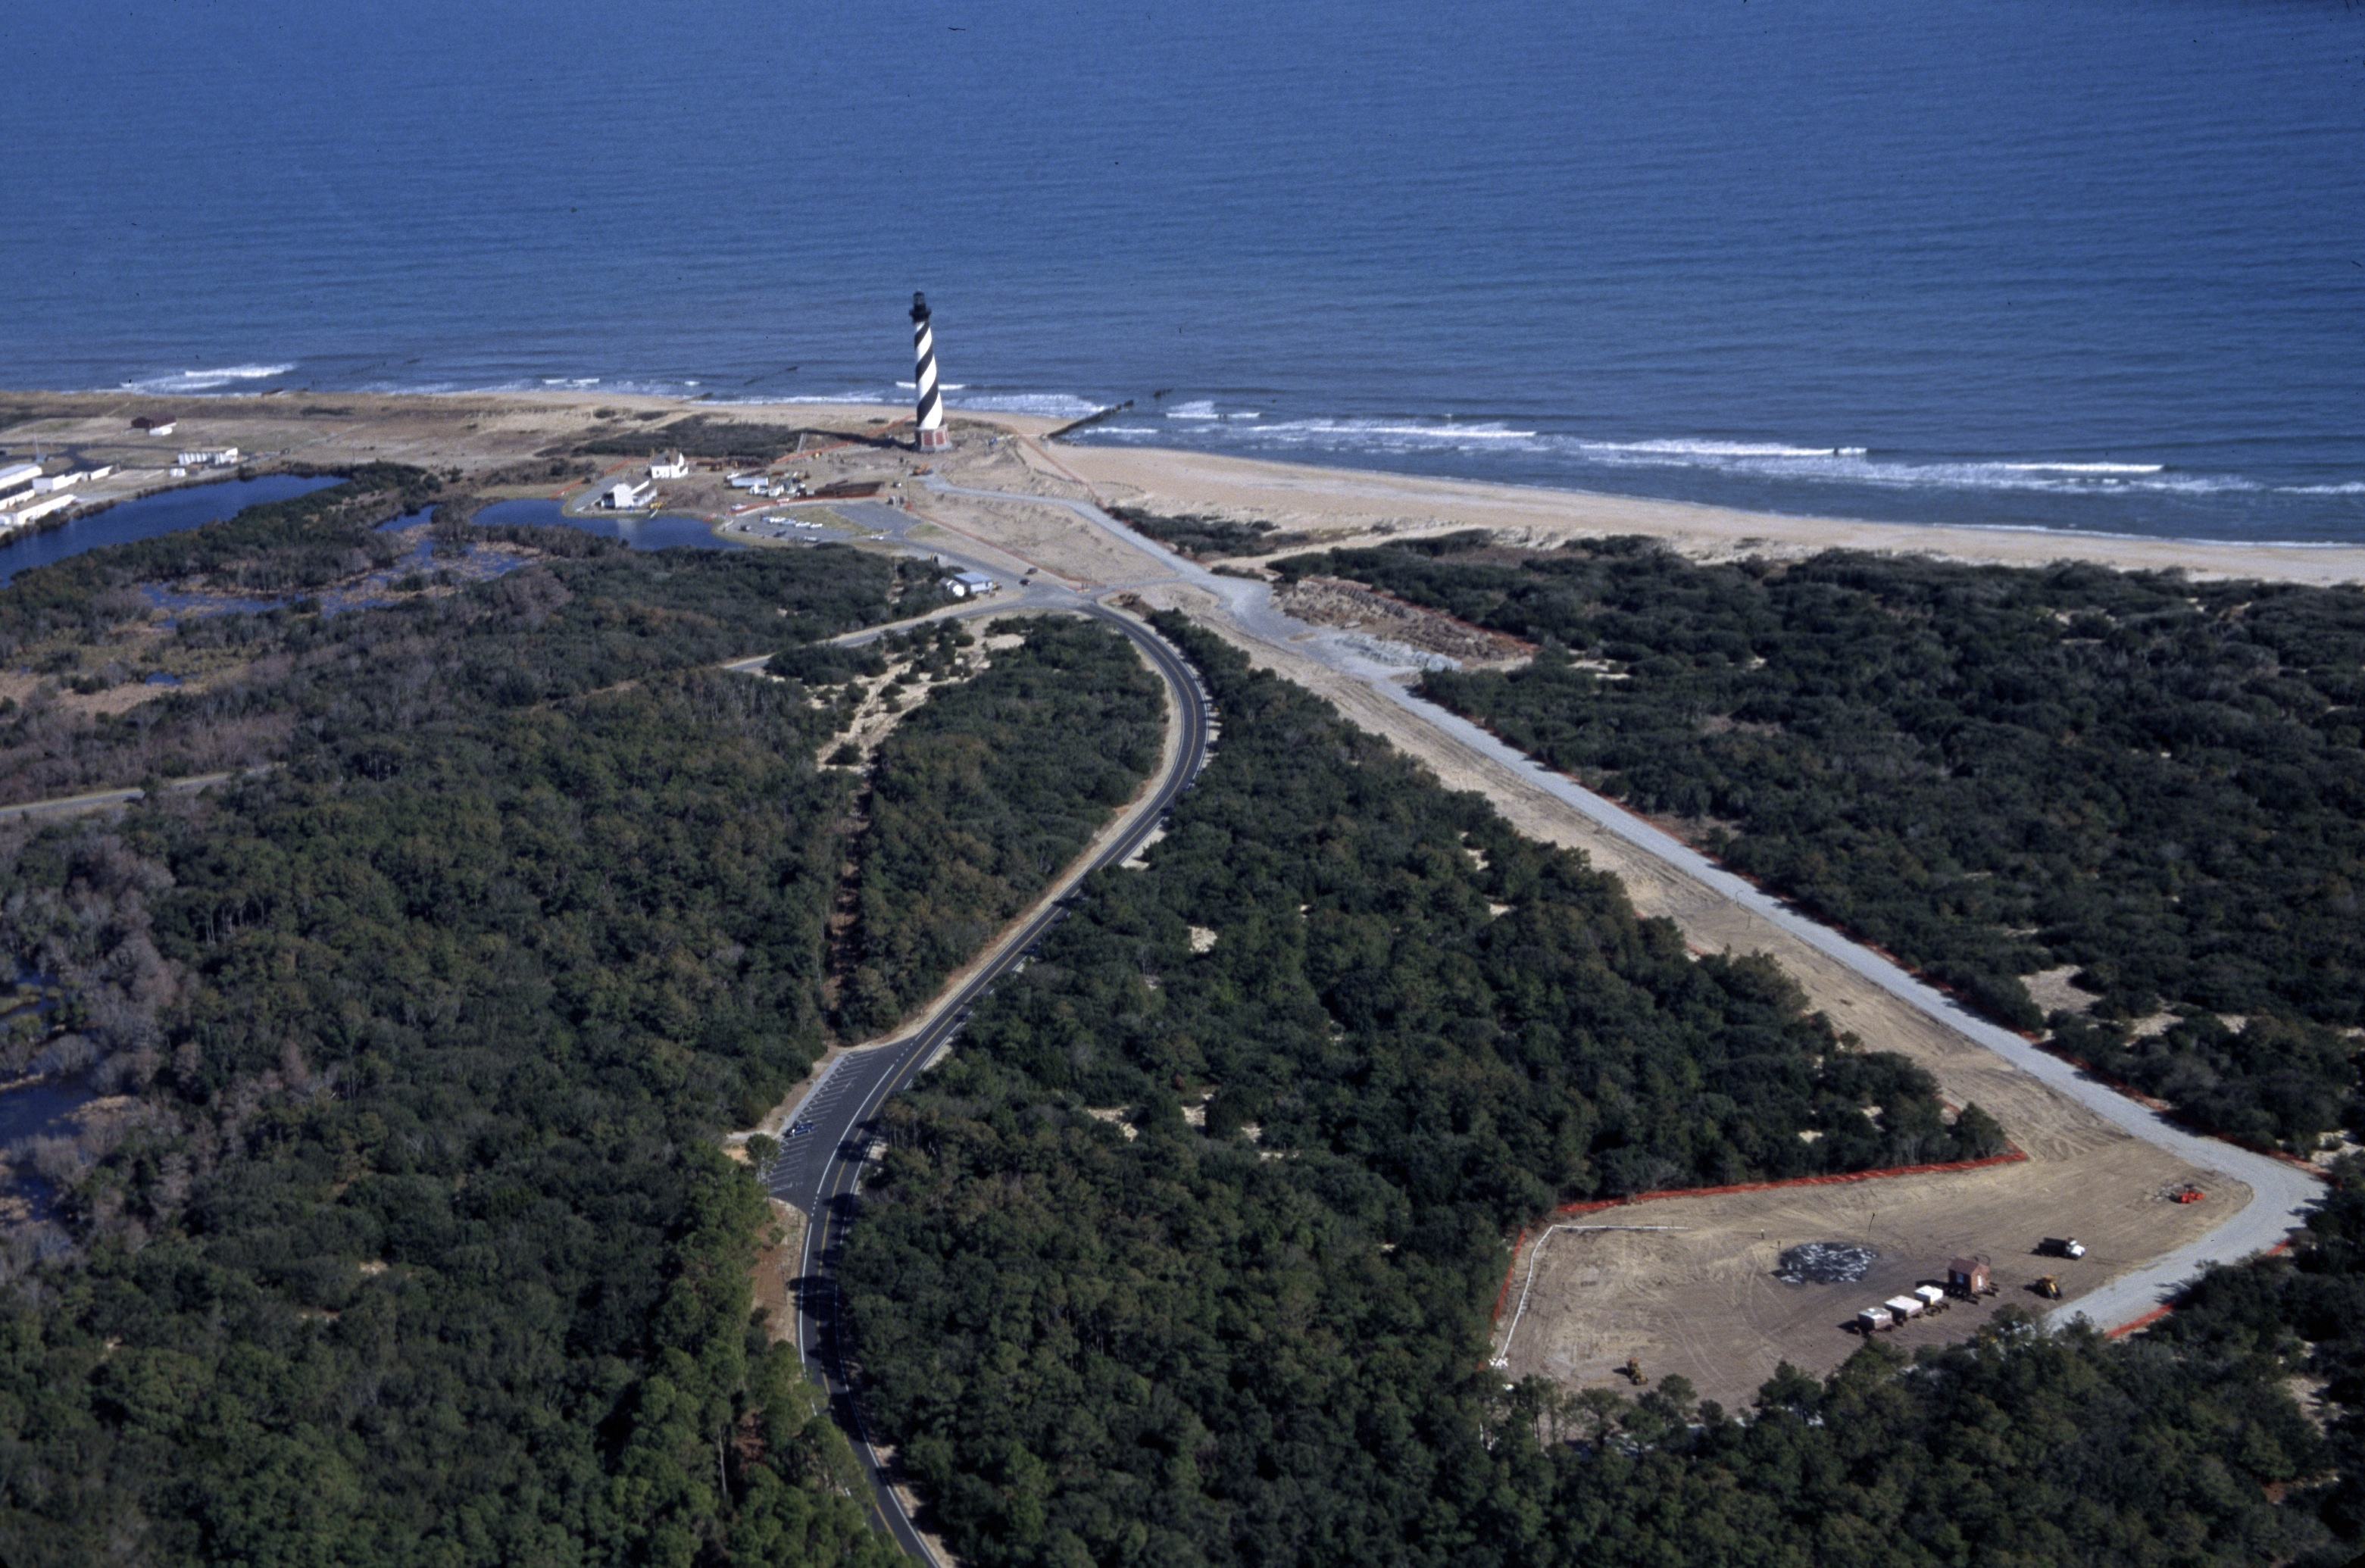 cape hatteras dating site You may climb the currituck and cape hatteras lights there are also lifesaving stations dating from 1874 the  this is the site of the first attempt by the.